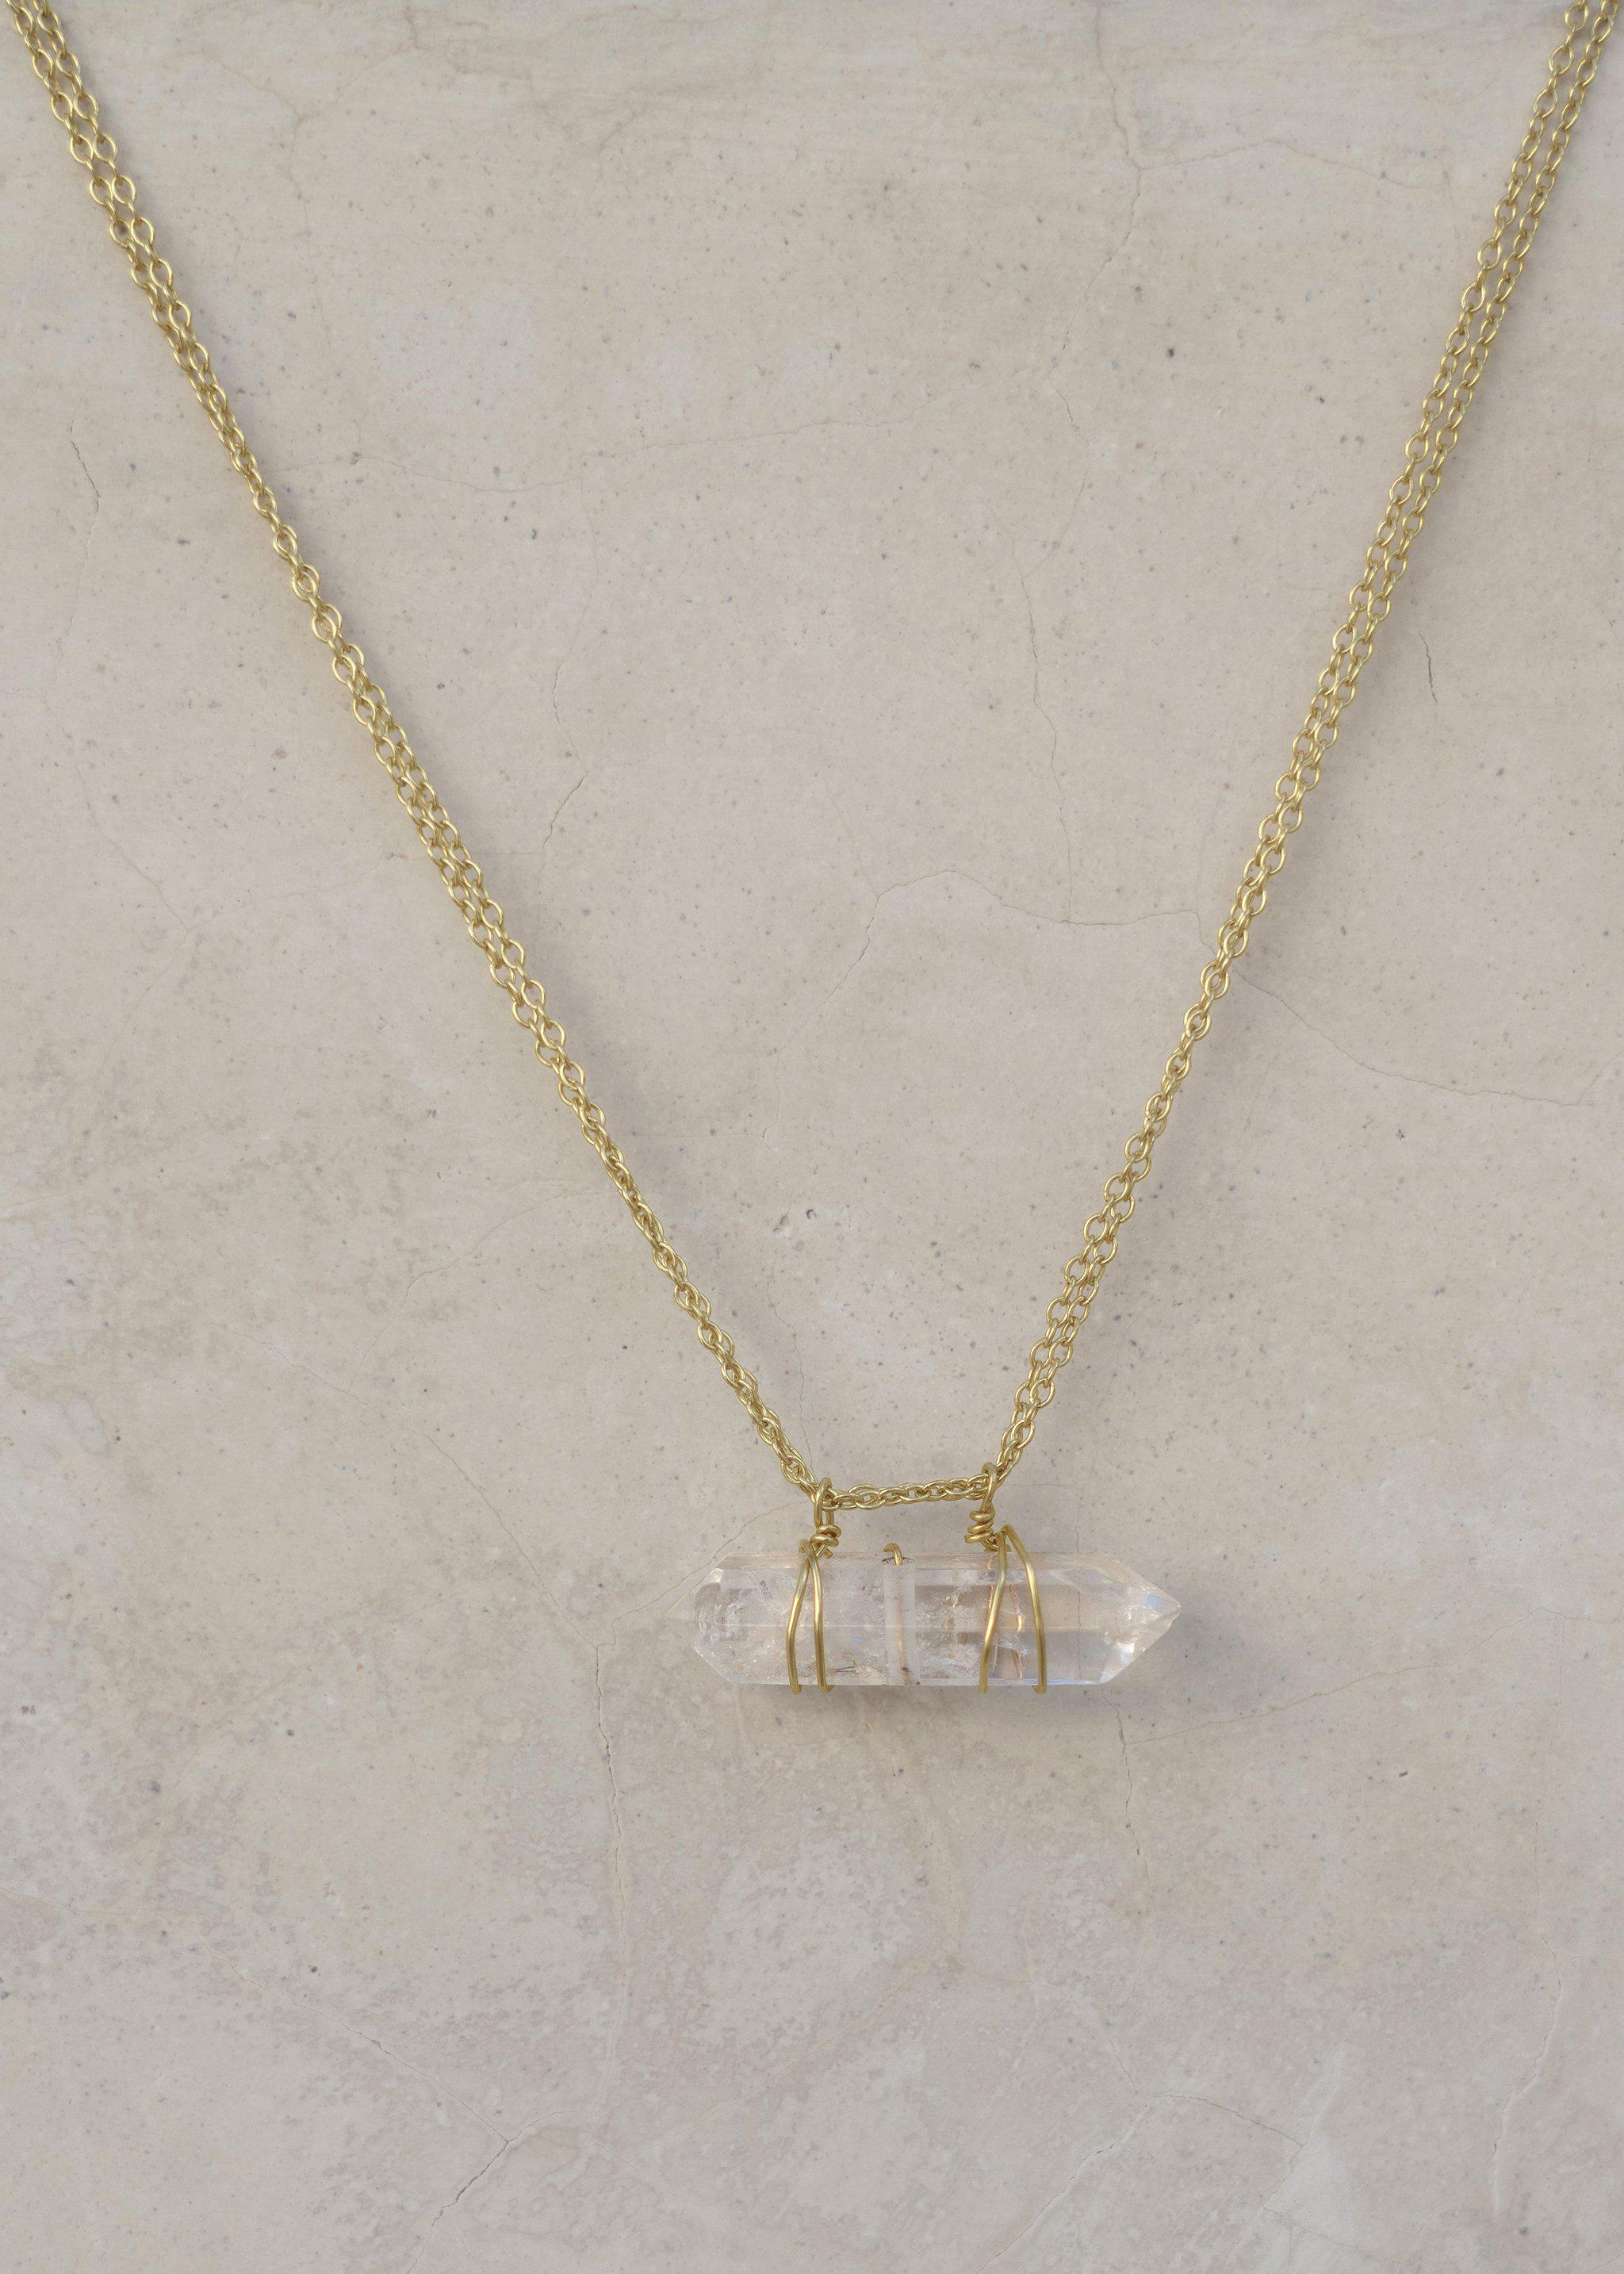 Tunnel of Light Necklace - Goldish